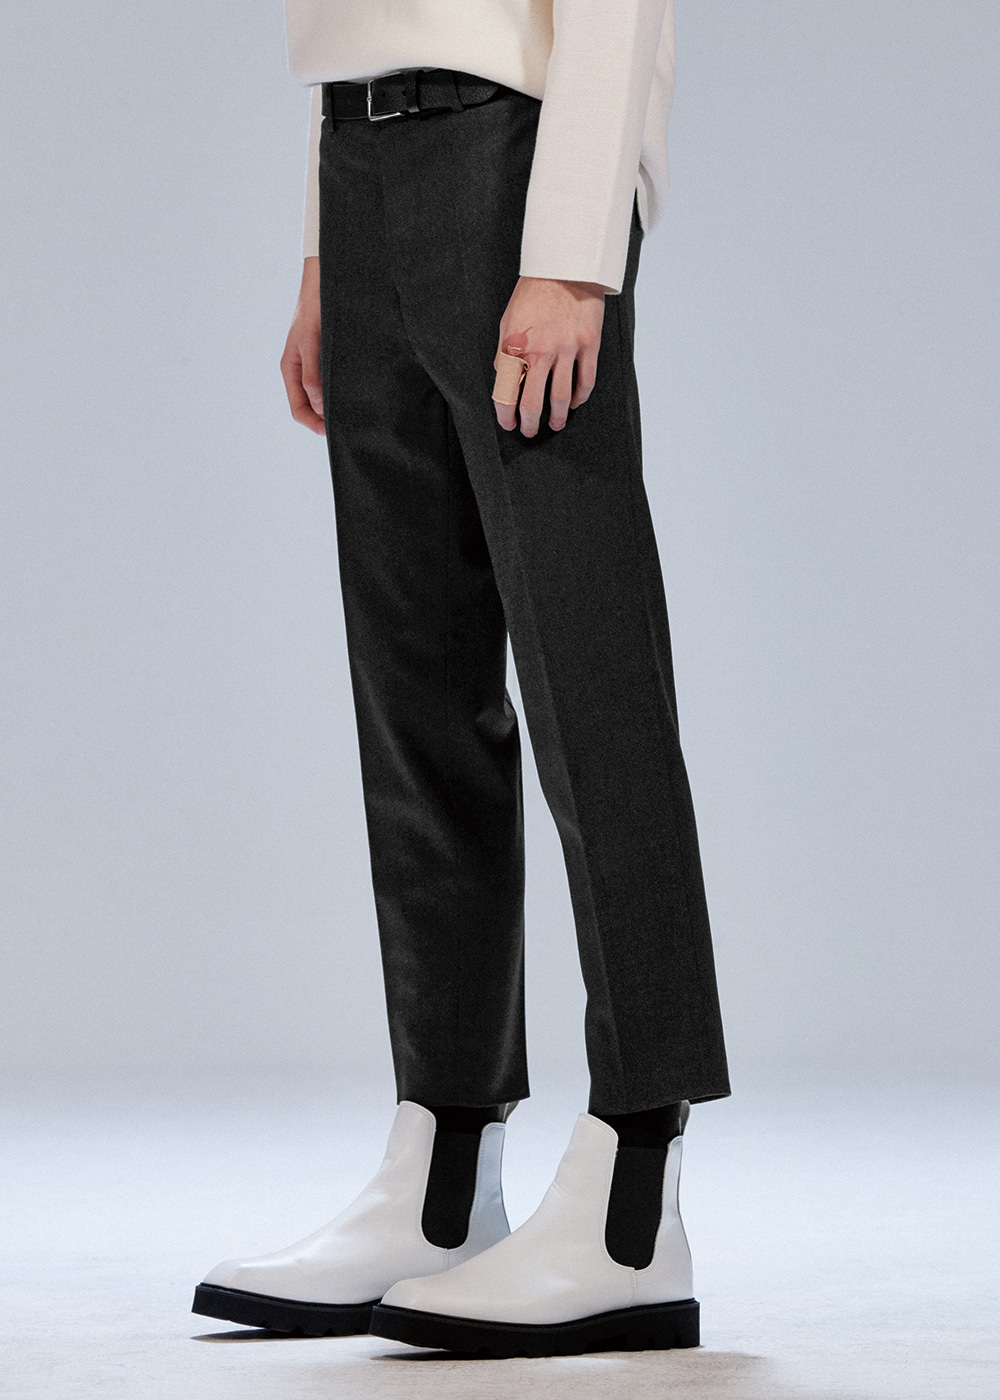 201 COMPACT WOOL TAPERED SLIMFIT CROP SLACKS CHARCOAL